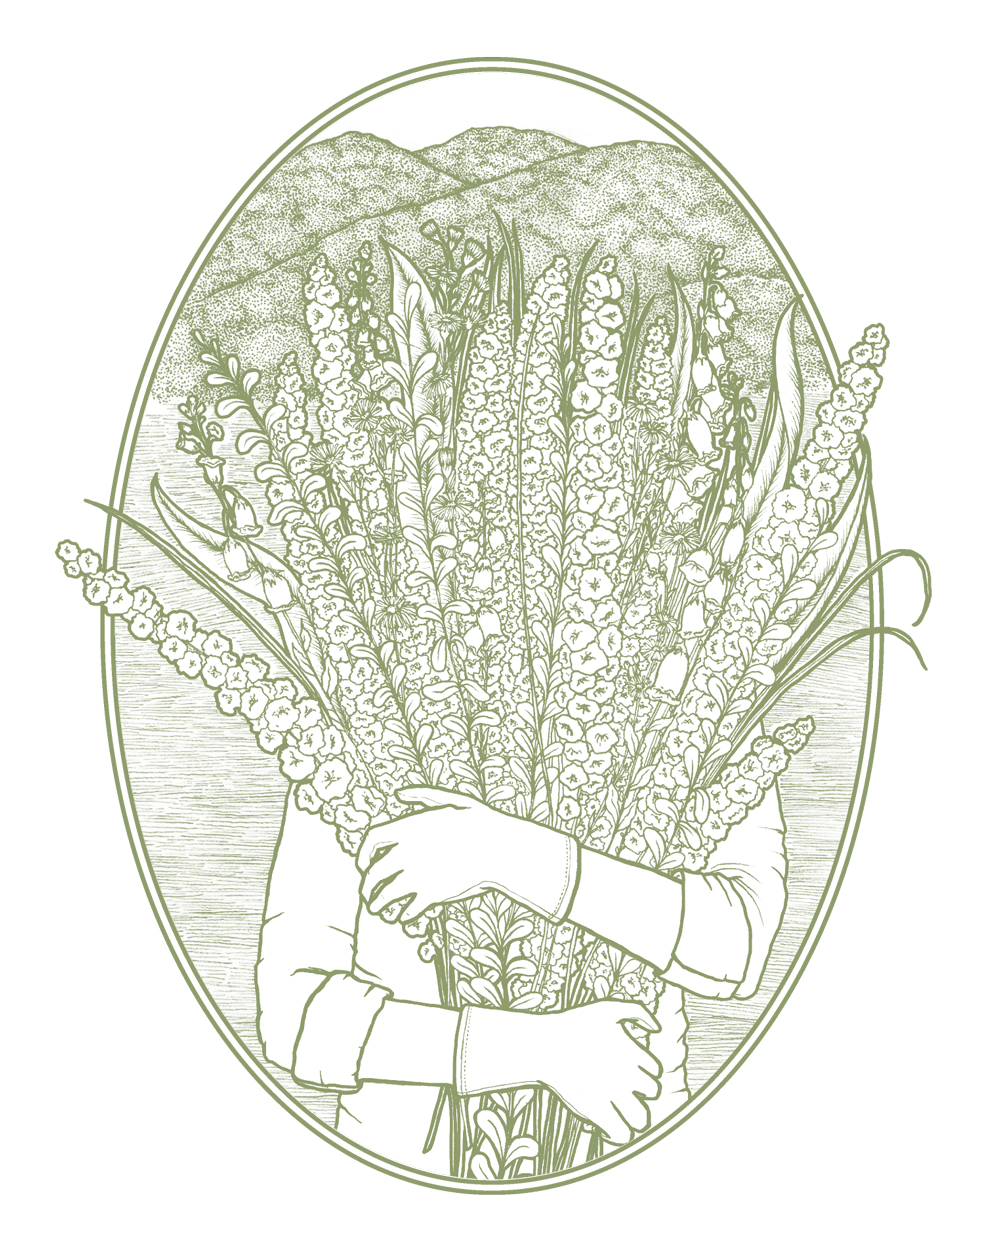 Garden & Gather Illustration